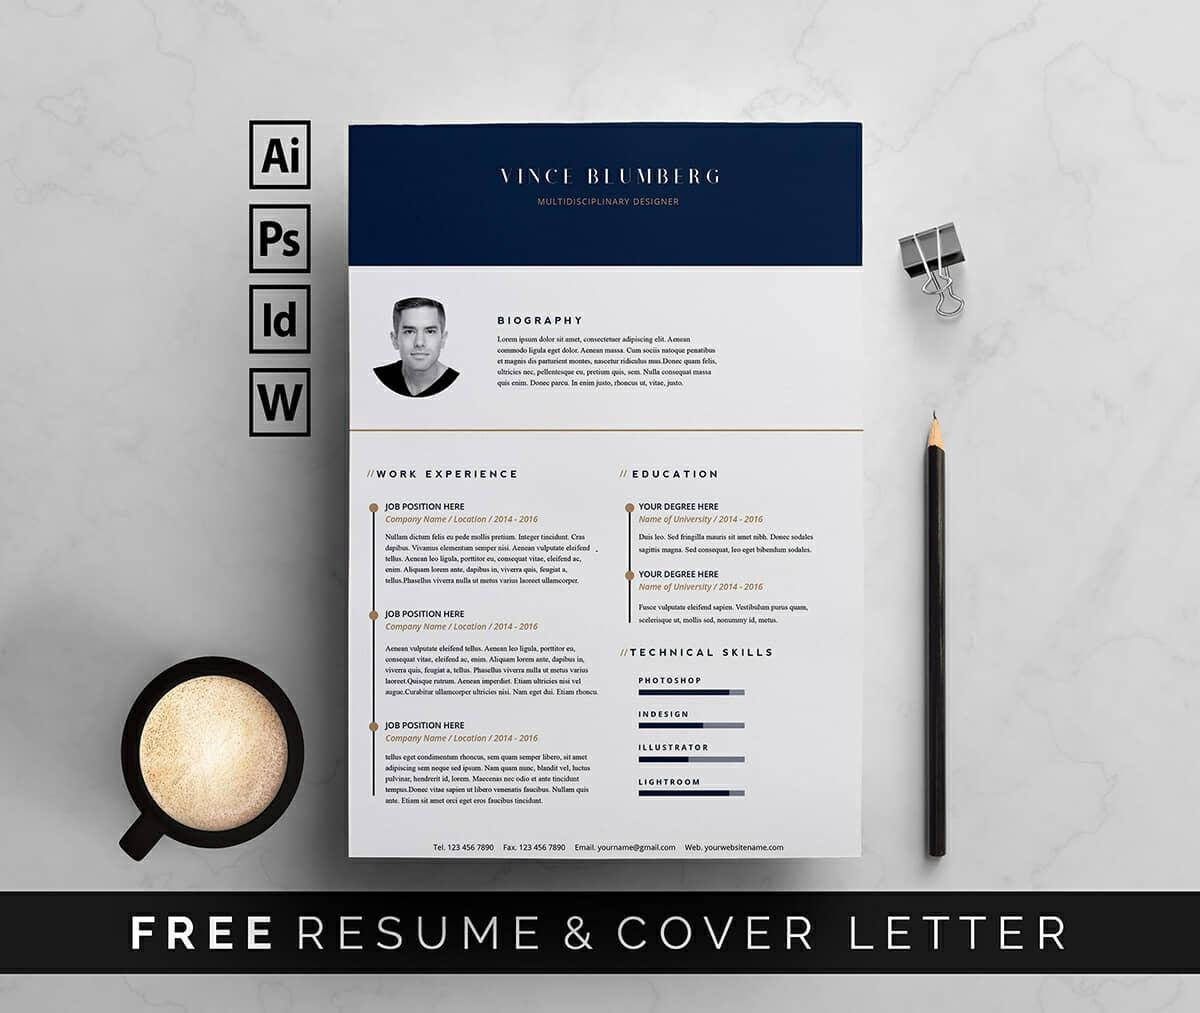 Resume Templates Word 15 Free Cvresume Formats To Download - Free-resume-templates-for-word-download